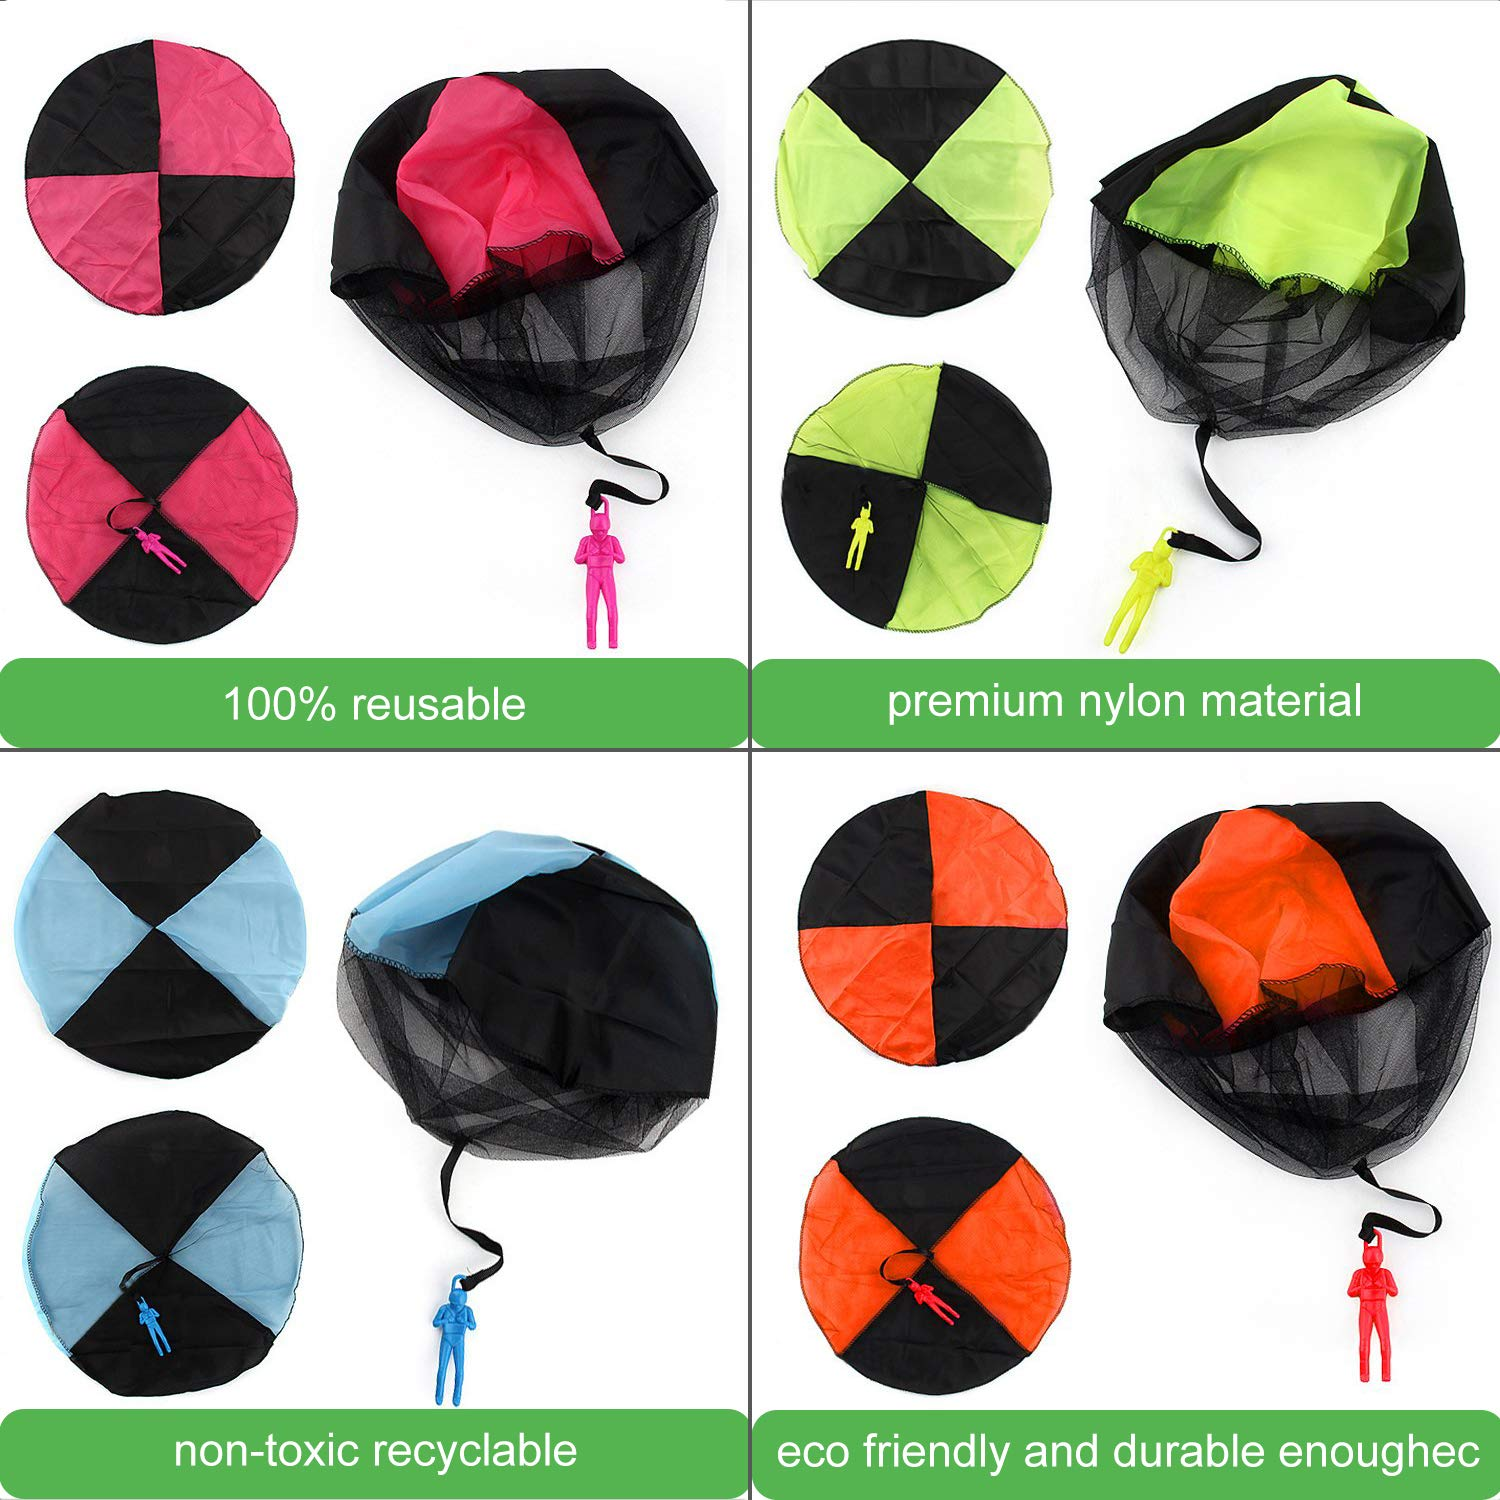 Camlinbo Parachute Toy-8 Pack Tangle Free Throwing Hand Throw Soldiers Parachute Man, Outdoor Children's Flying Toys for Kids Boys Girls Toddler No Battery nor Assembly Required by Camlinbo (Image #7)